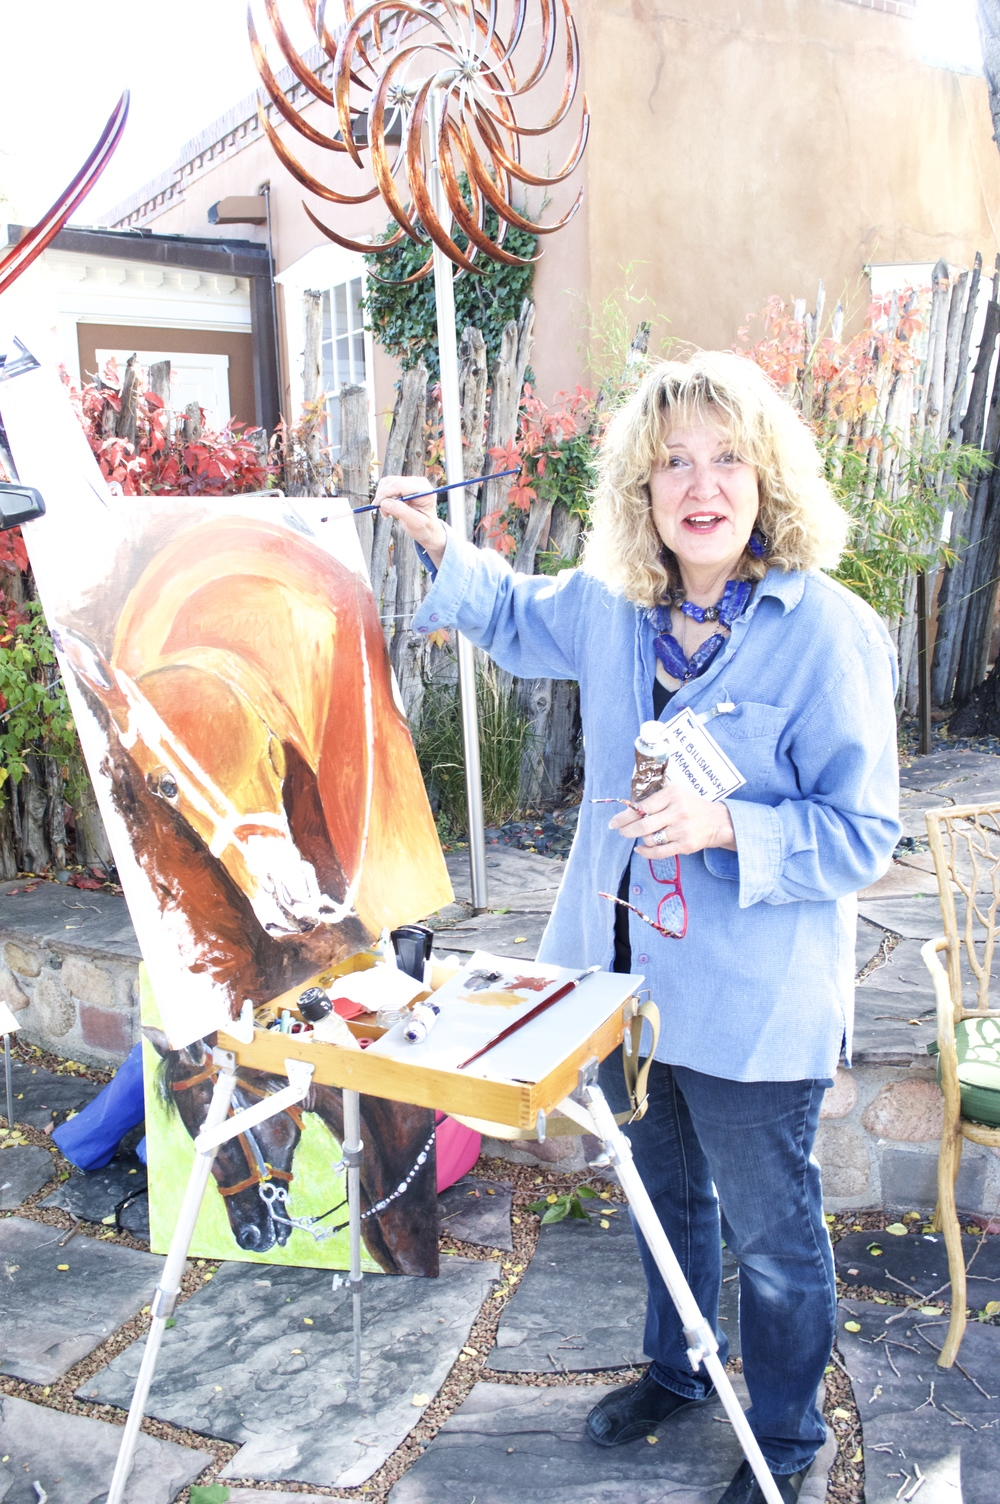 One of our visiting painters, working on a beautiful mahogany horse oil-on-canvas in our garden.